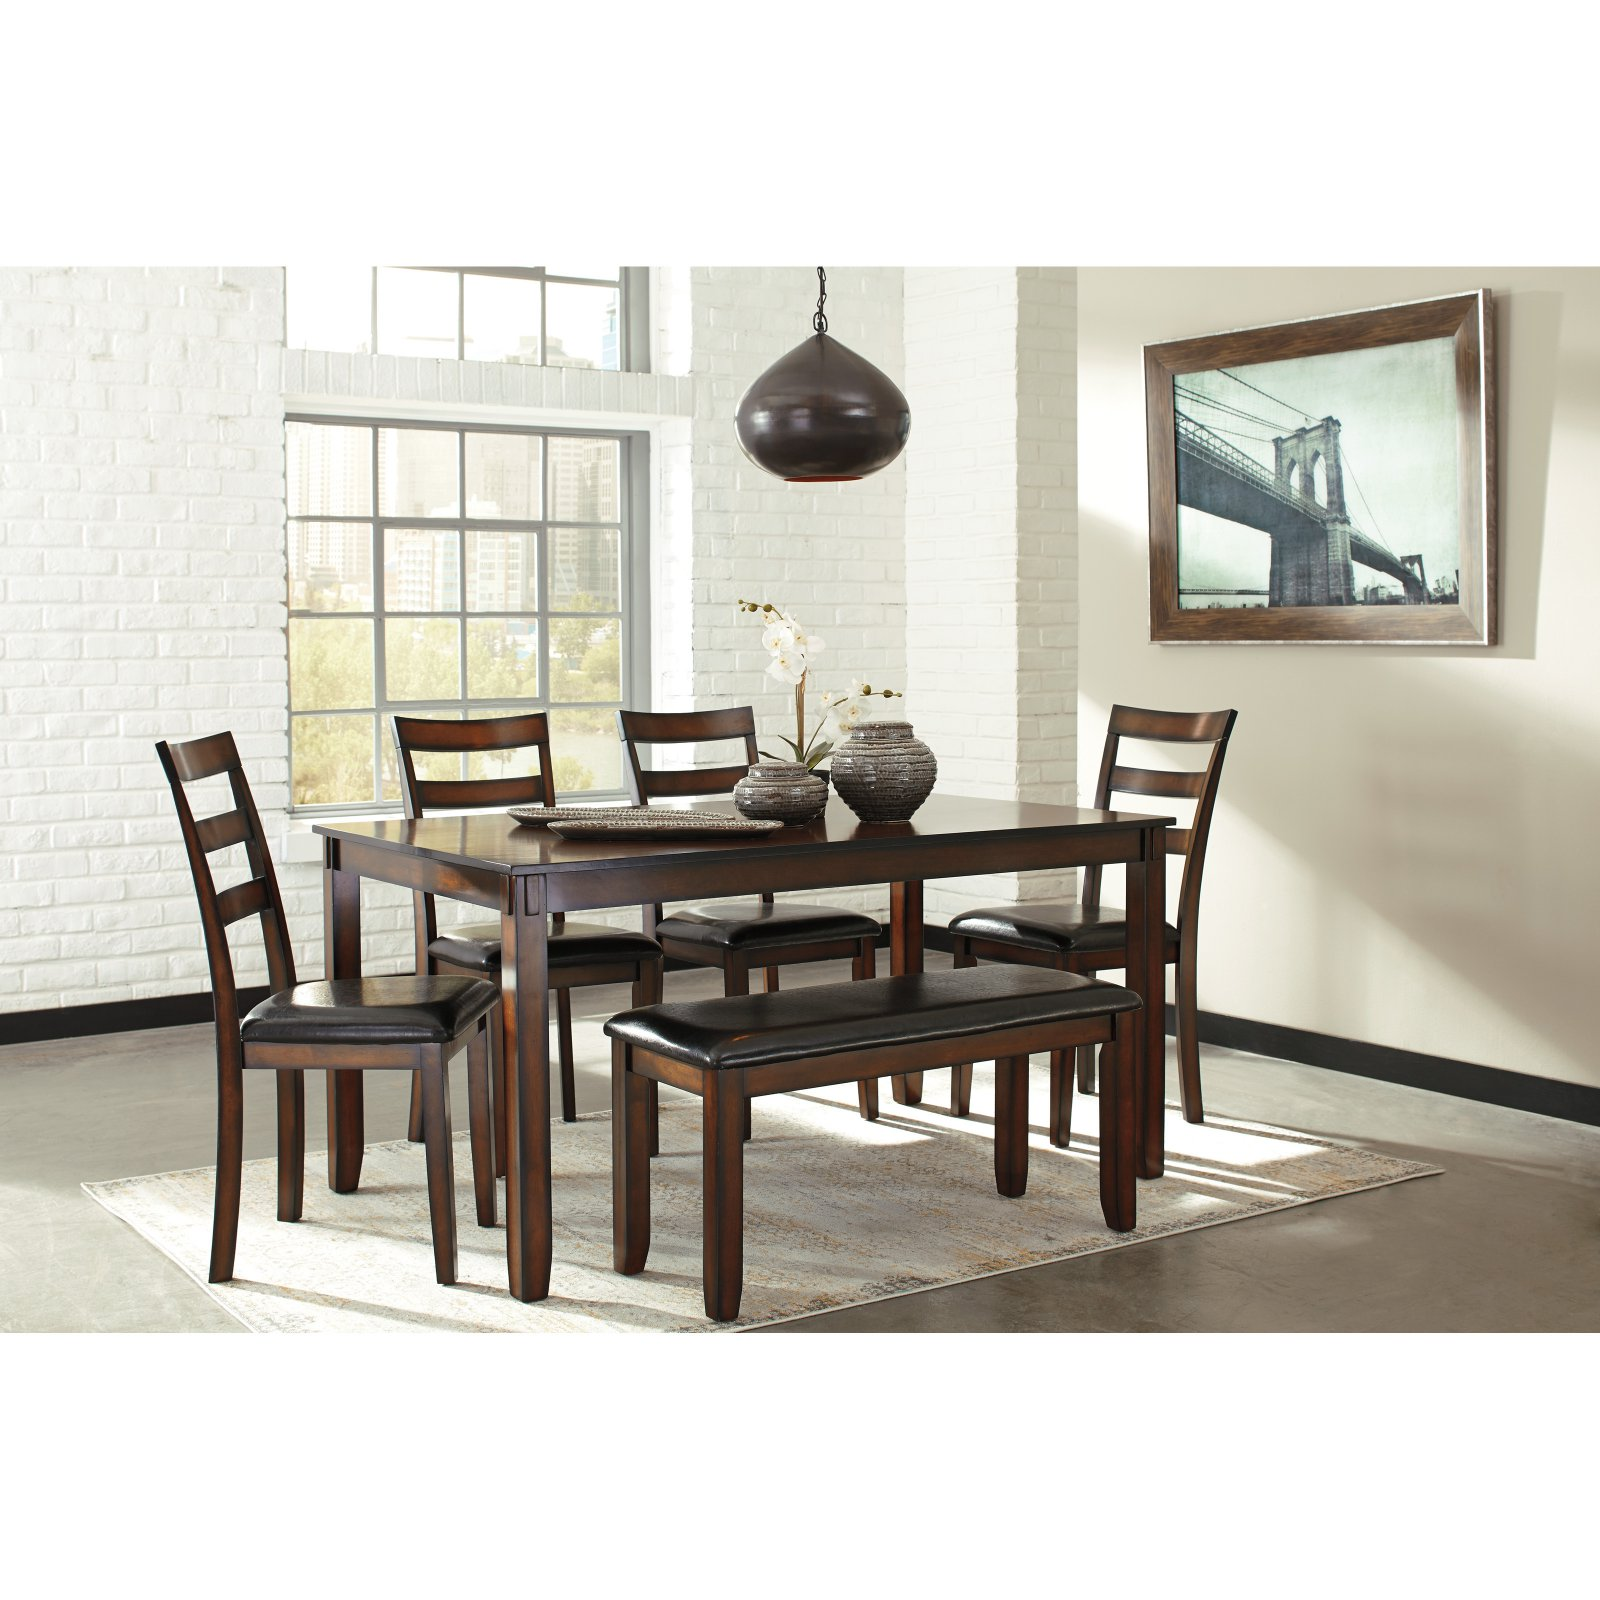 Signature Design By Ashley Coviar 6 Piece Dining Table Set Walmartcom